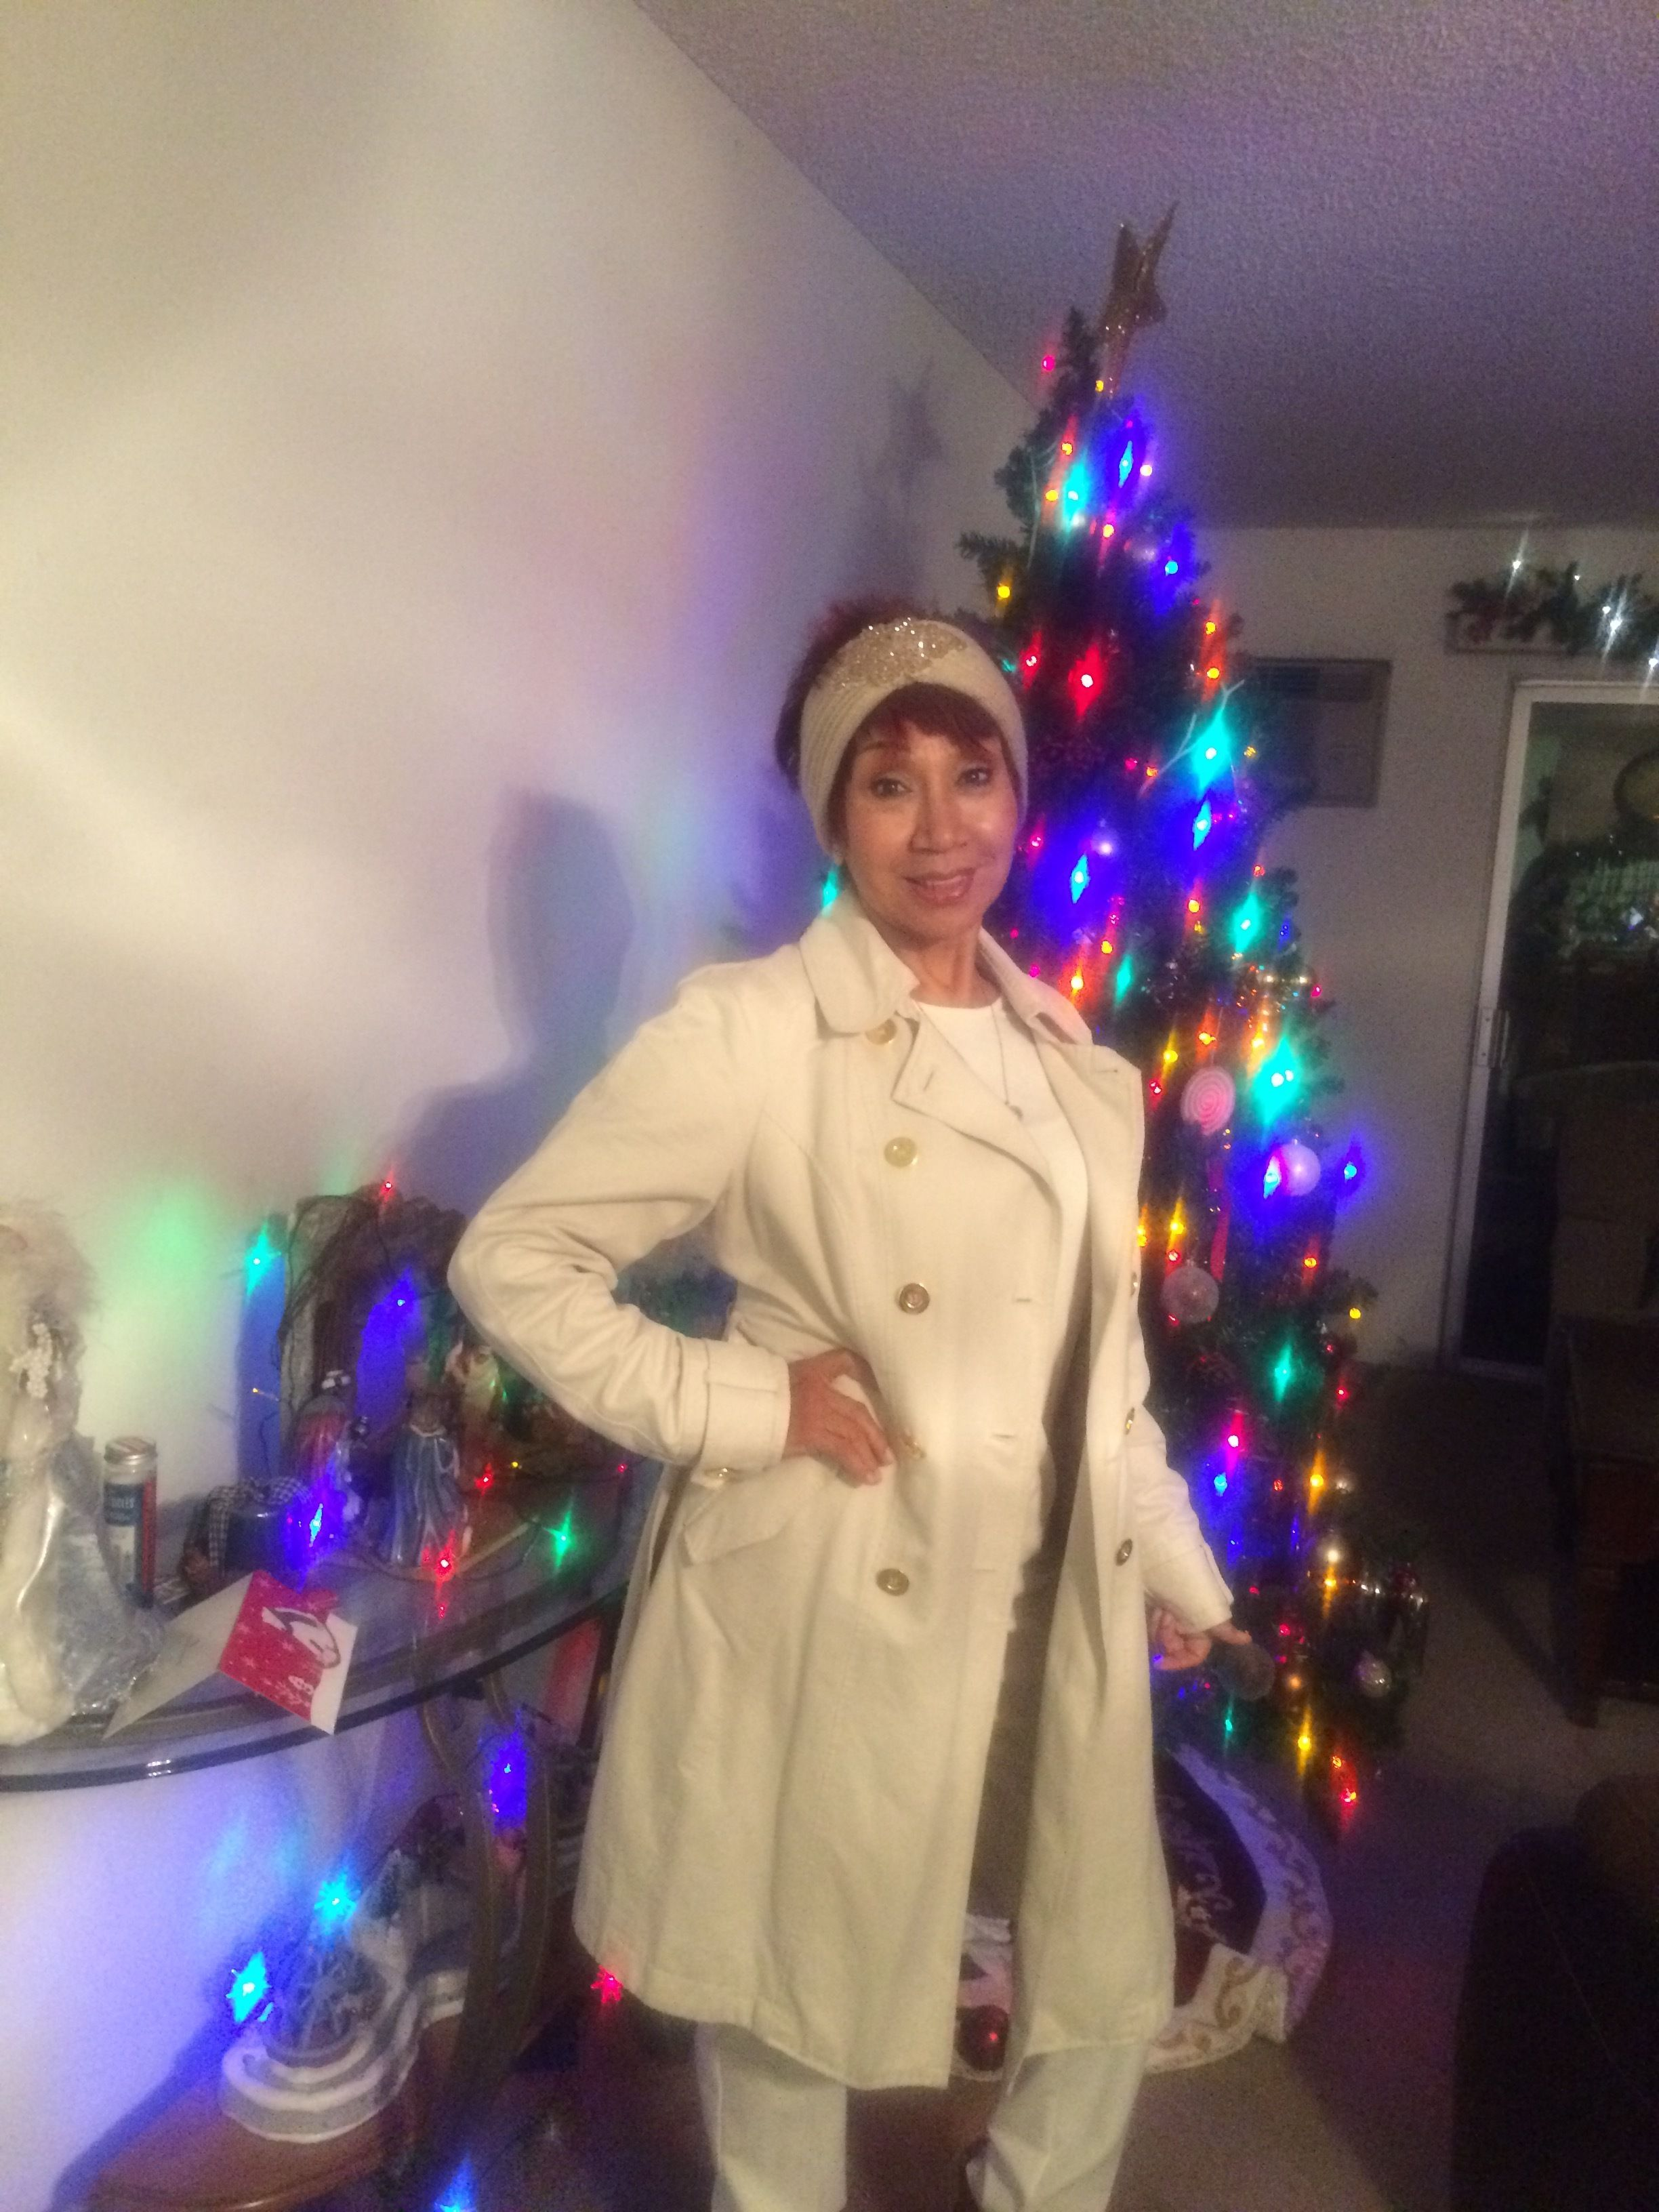 huntington beach muslim personals Find personals listings in orange county on oodle classifieds personals in orange county (1 40 yr old women seek men huntington beach, ca.